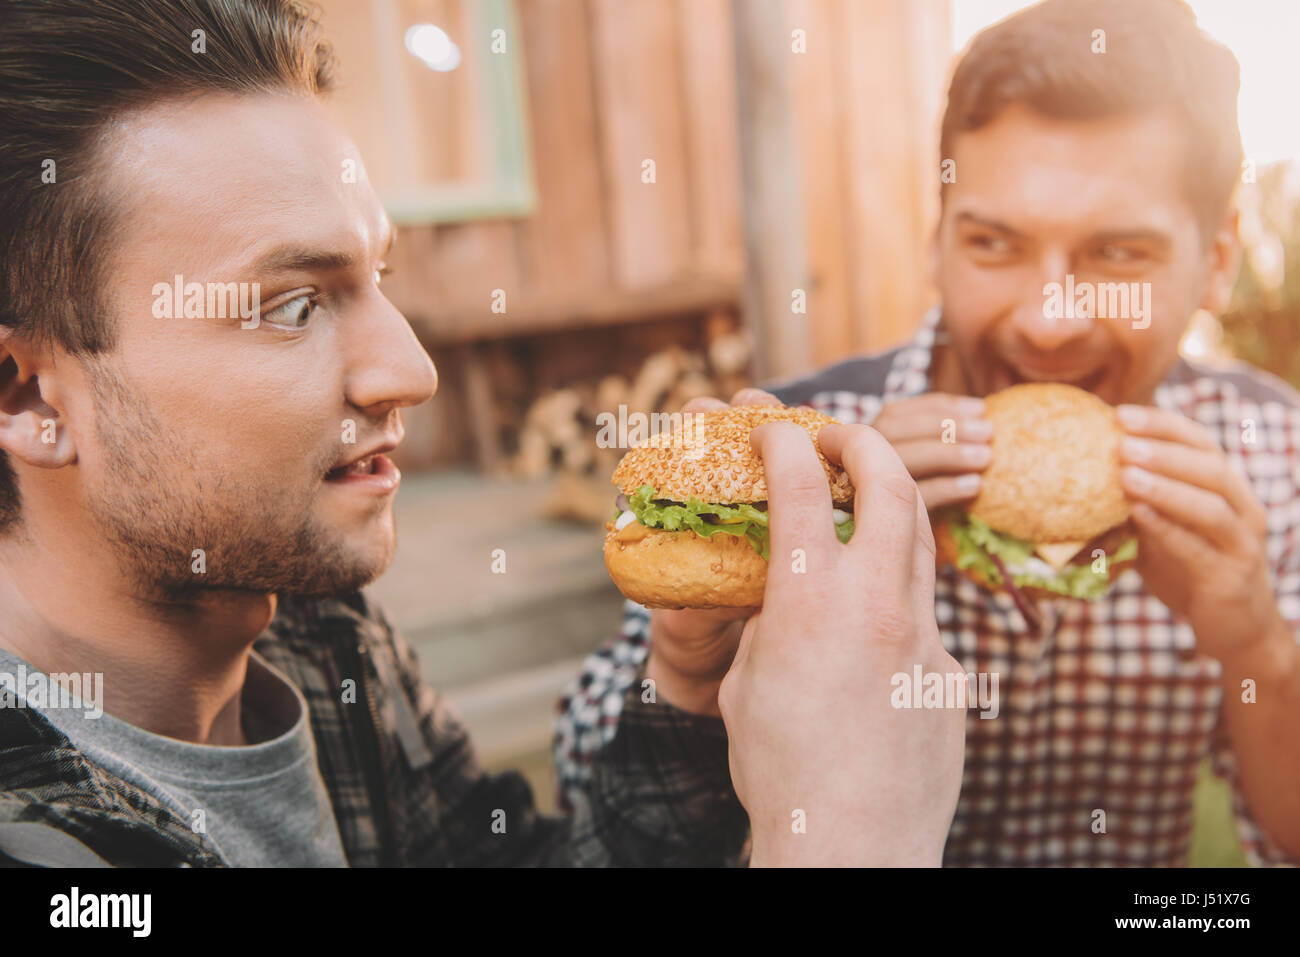 Emotional young men eating gourmet hamburgers outdoors - Stock Image